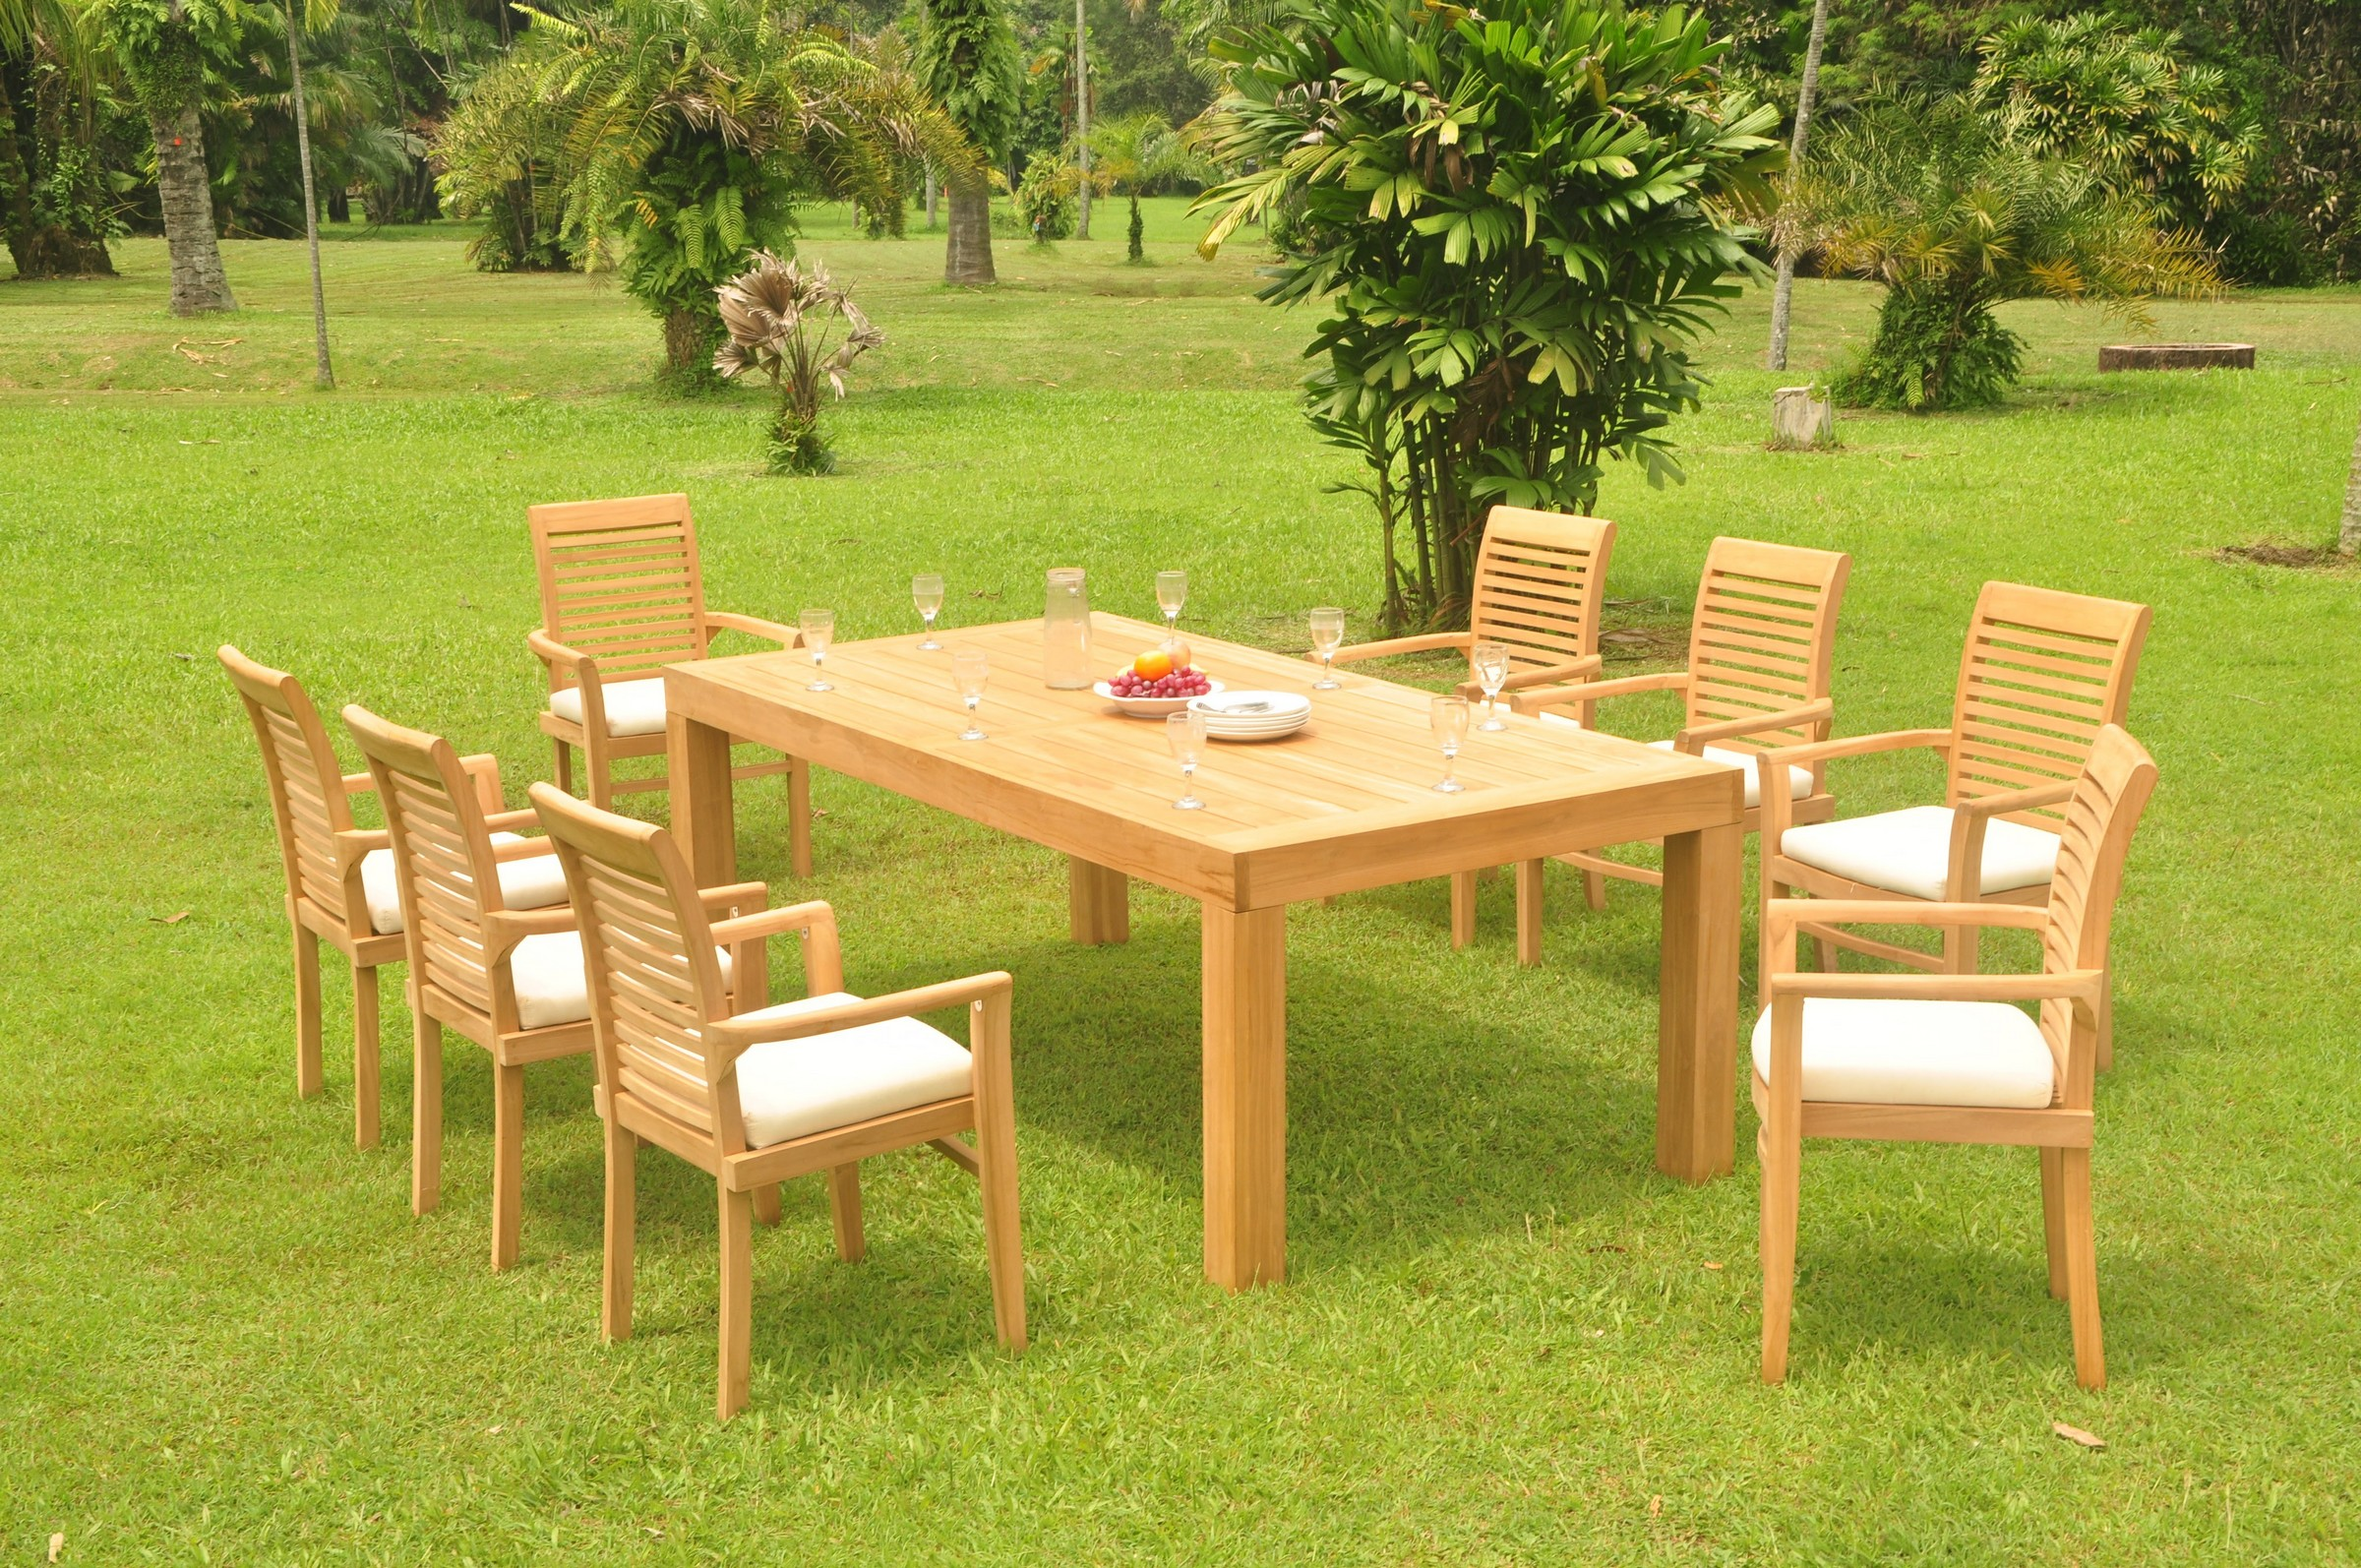 dsms a grade teak 9pc dining set 86 canberra rectangle table